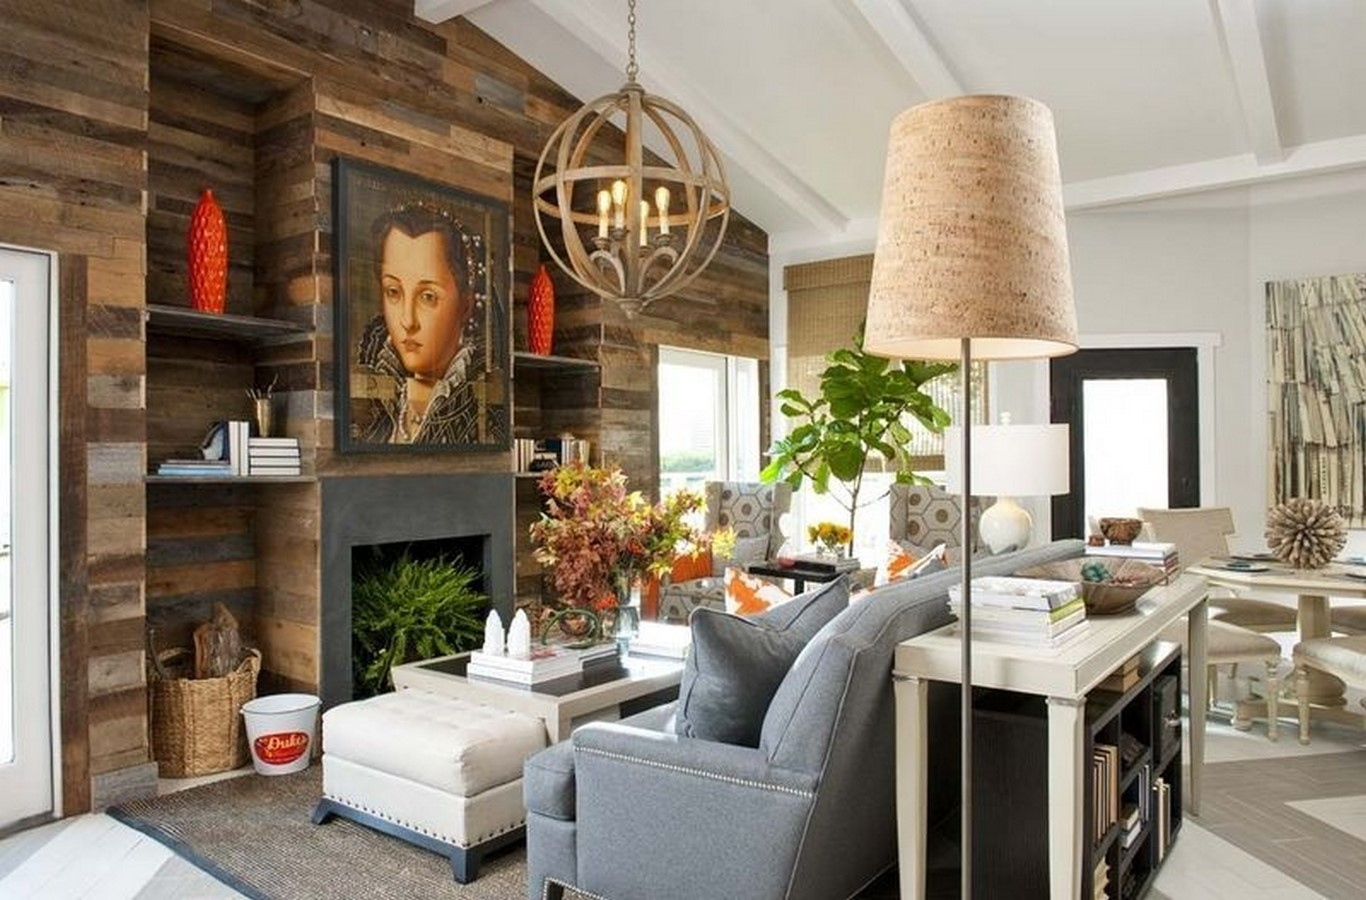 30 Examples of Rustic interiors for living rooms - Sheet22